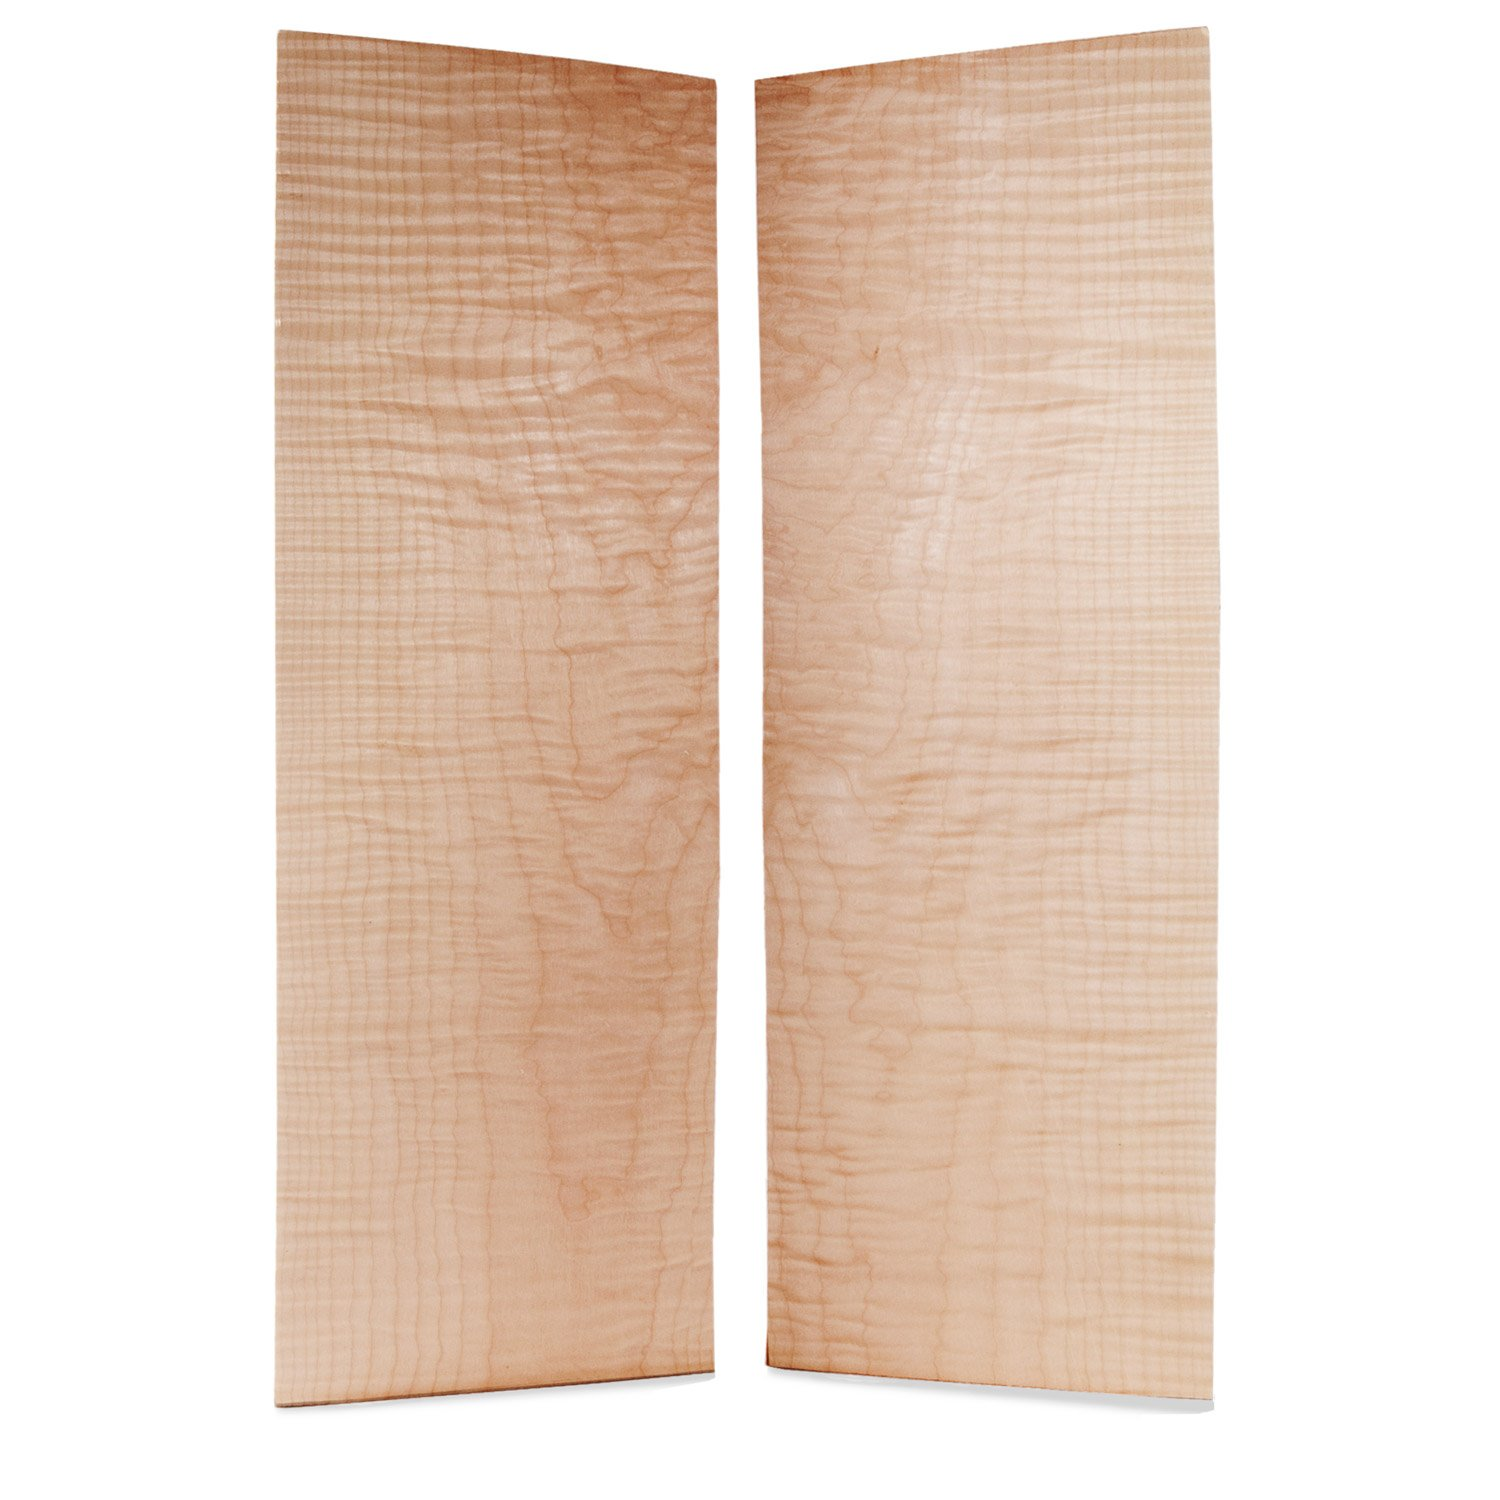 StewMac Curly Maple Top Wood for Flat Solidbody Guitars, AAAA Grade